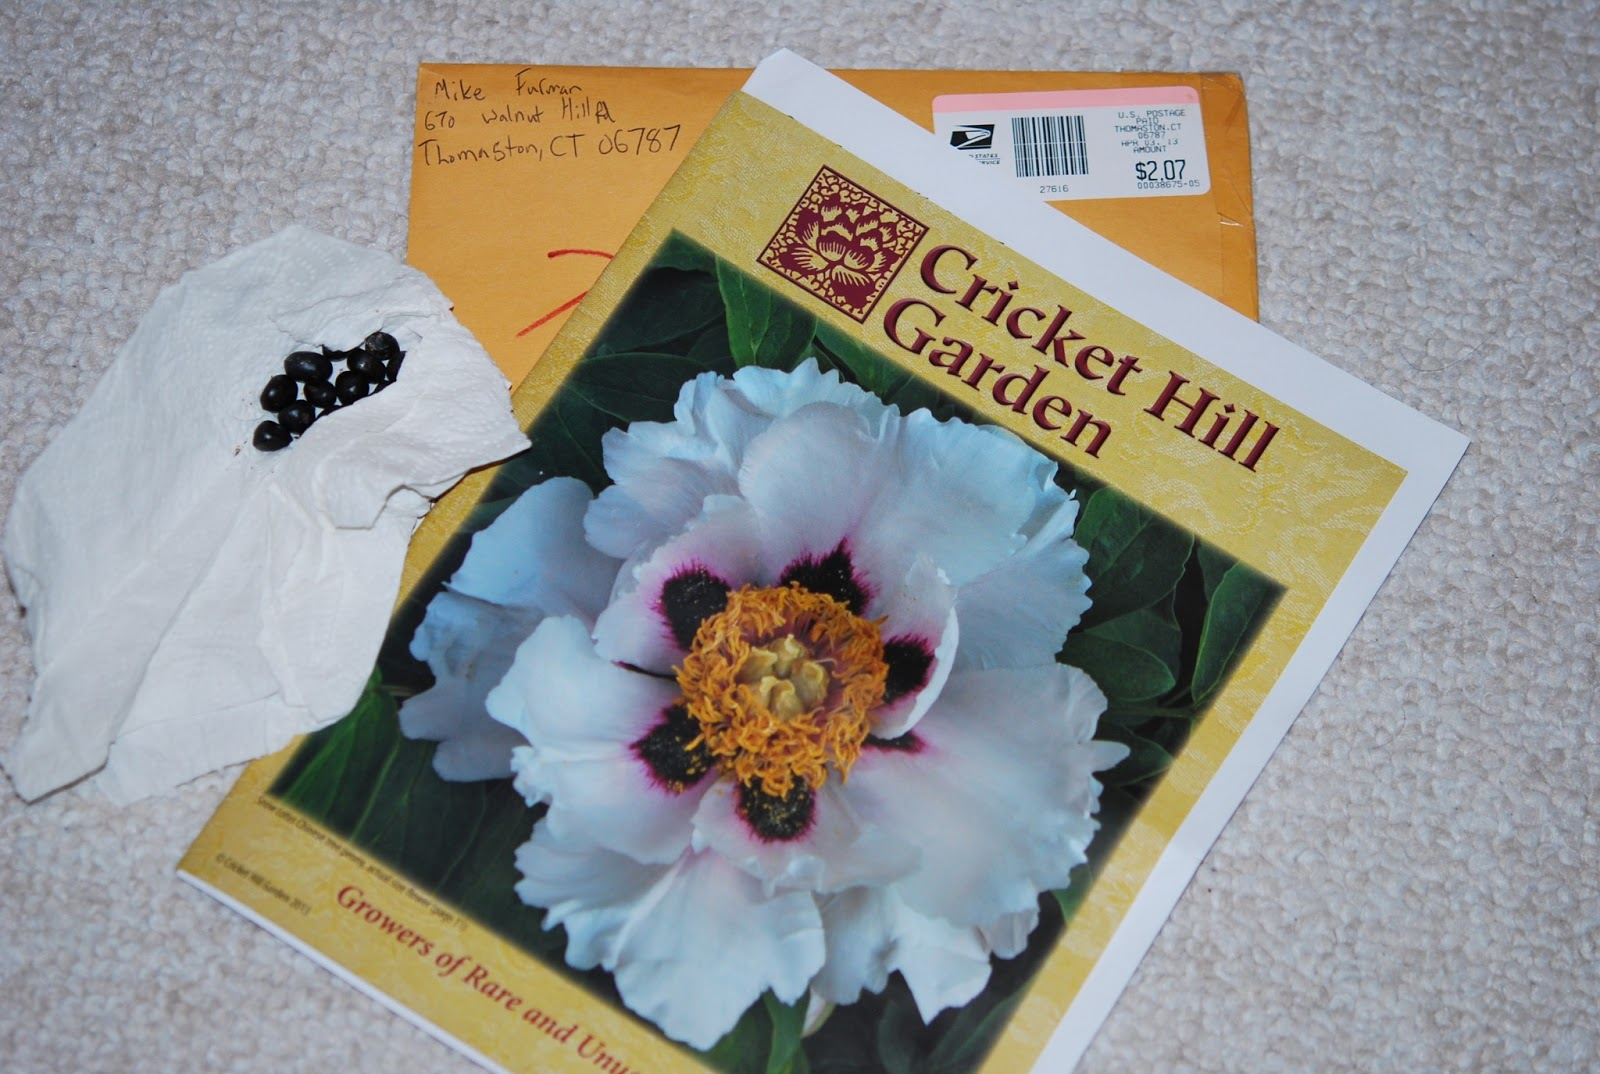 P. Rockii Seeds And Catalog From Cricket Hill Gardens